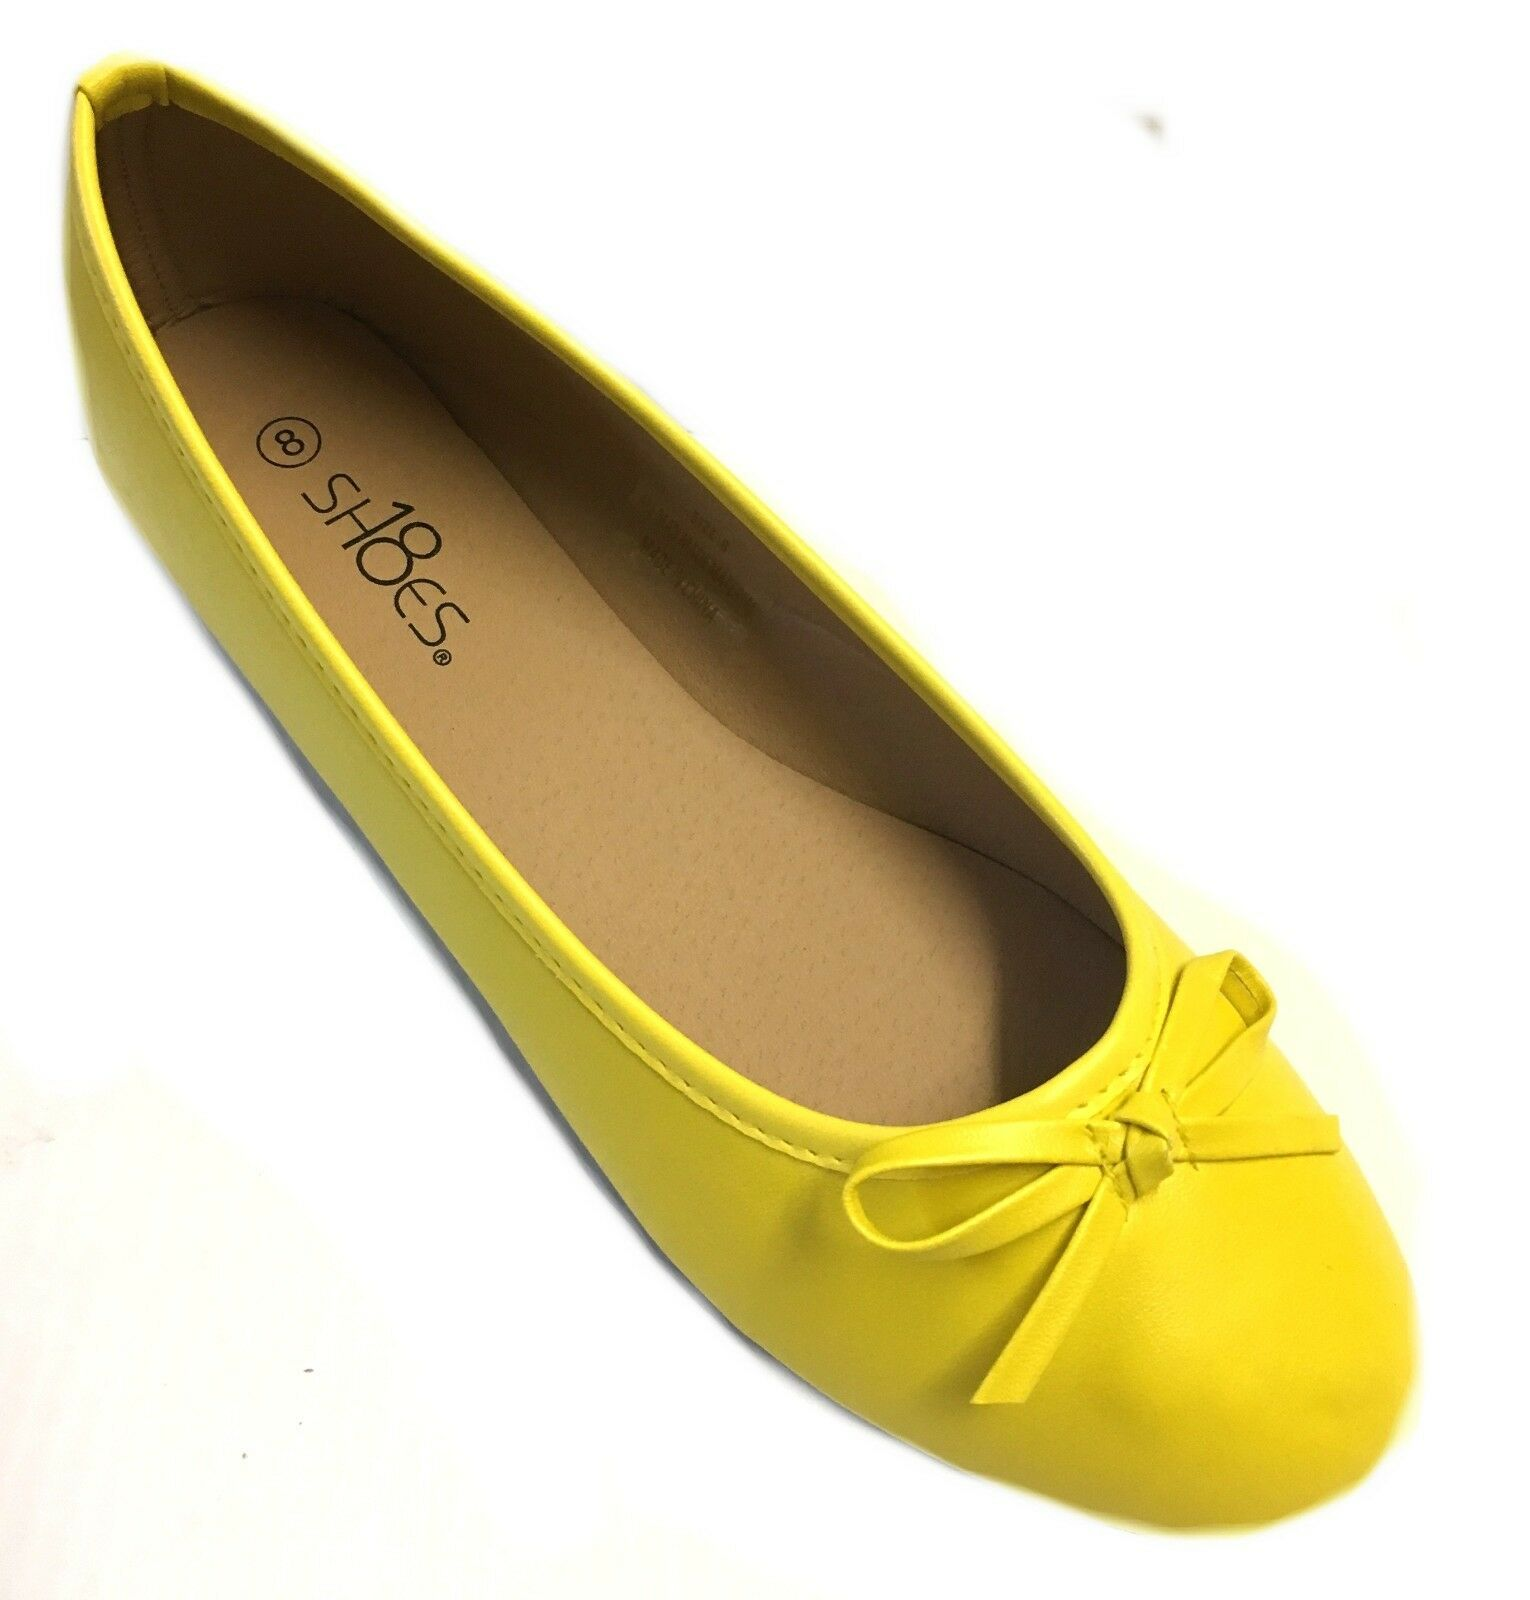 Shoes 18 Womens MicroSuede  PU Leather  Ballerina Ballet  Flat Shoes